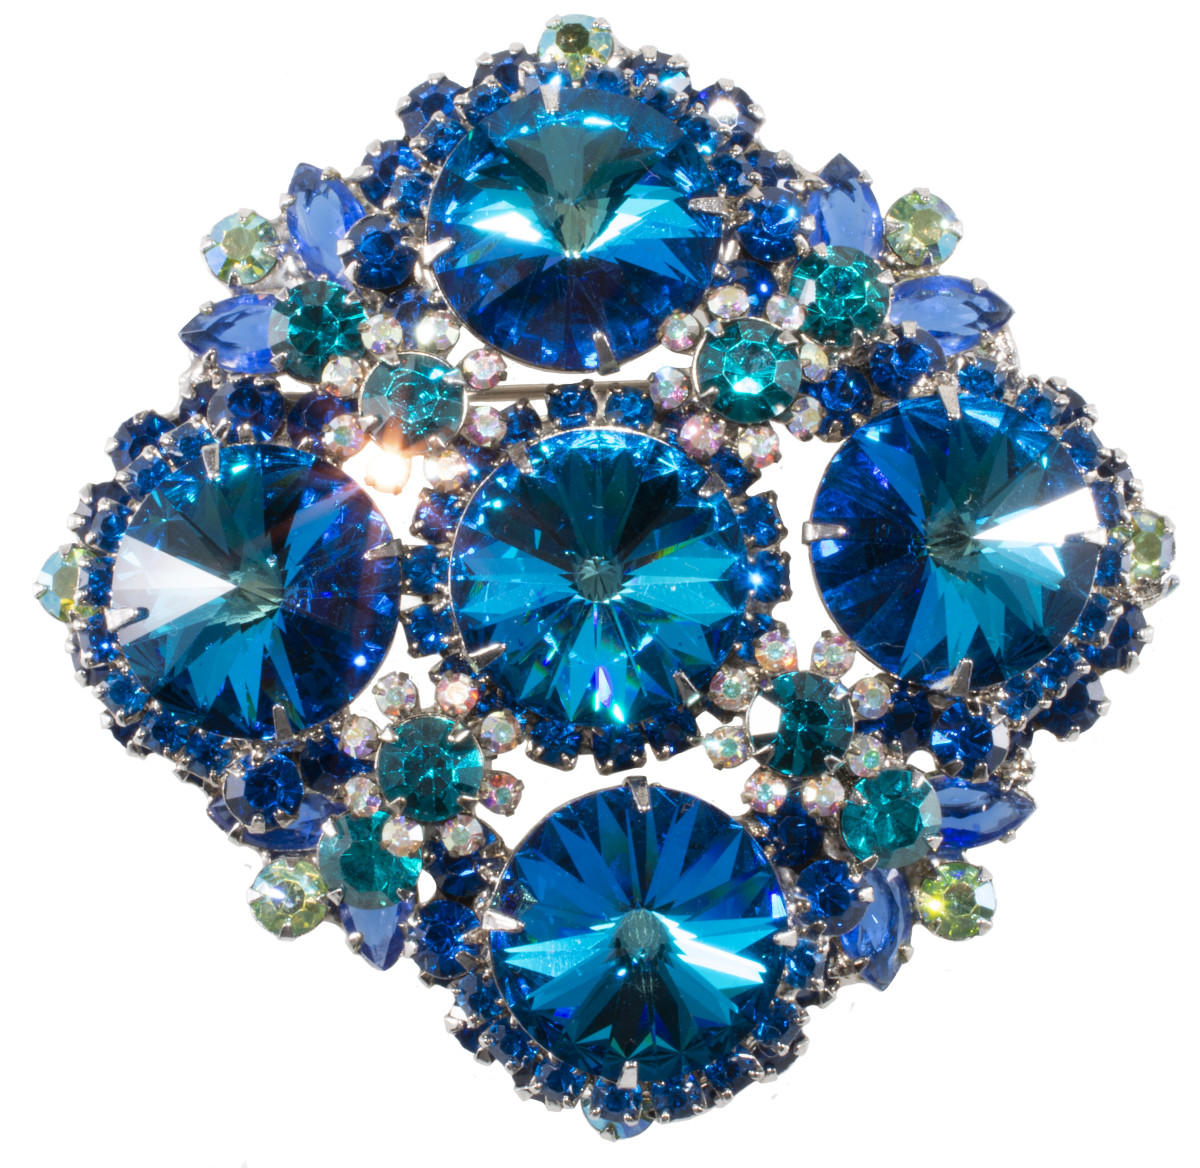 Juliana brooch with rivoli stones and floret embellishment.